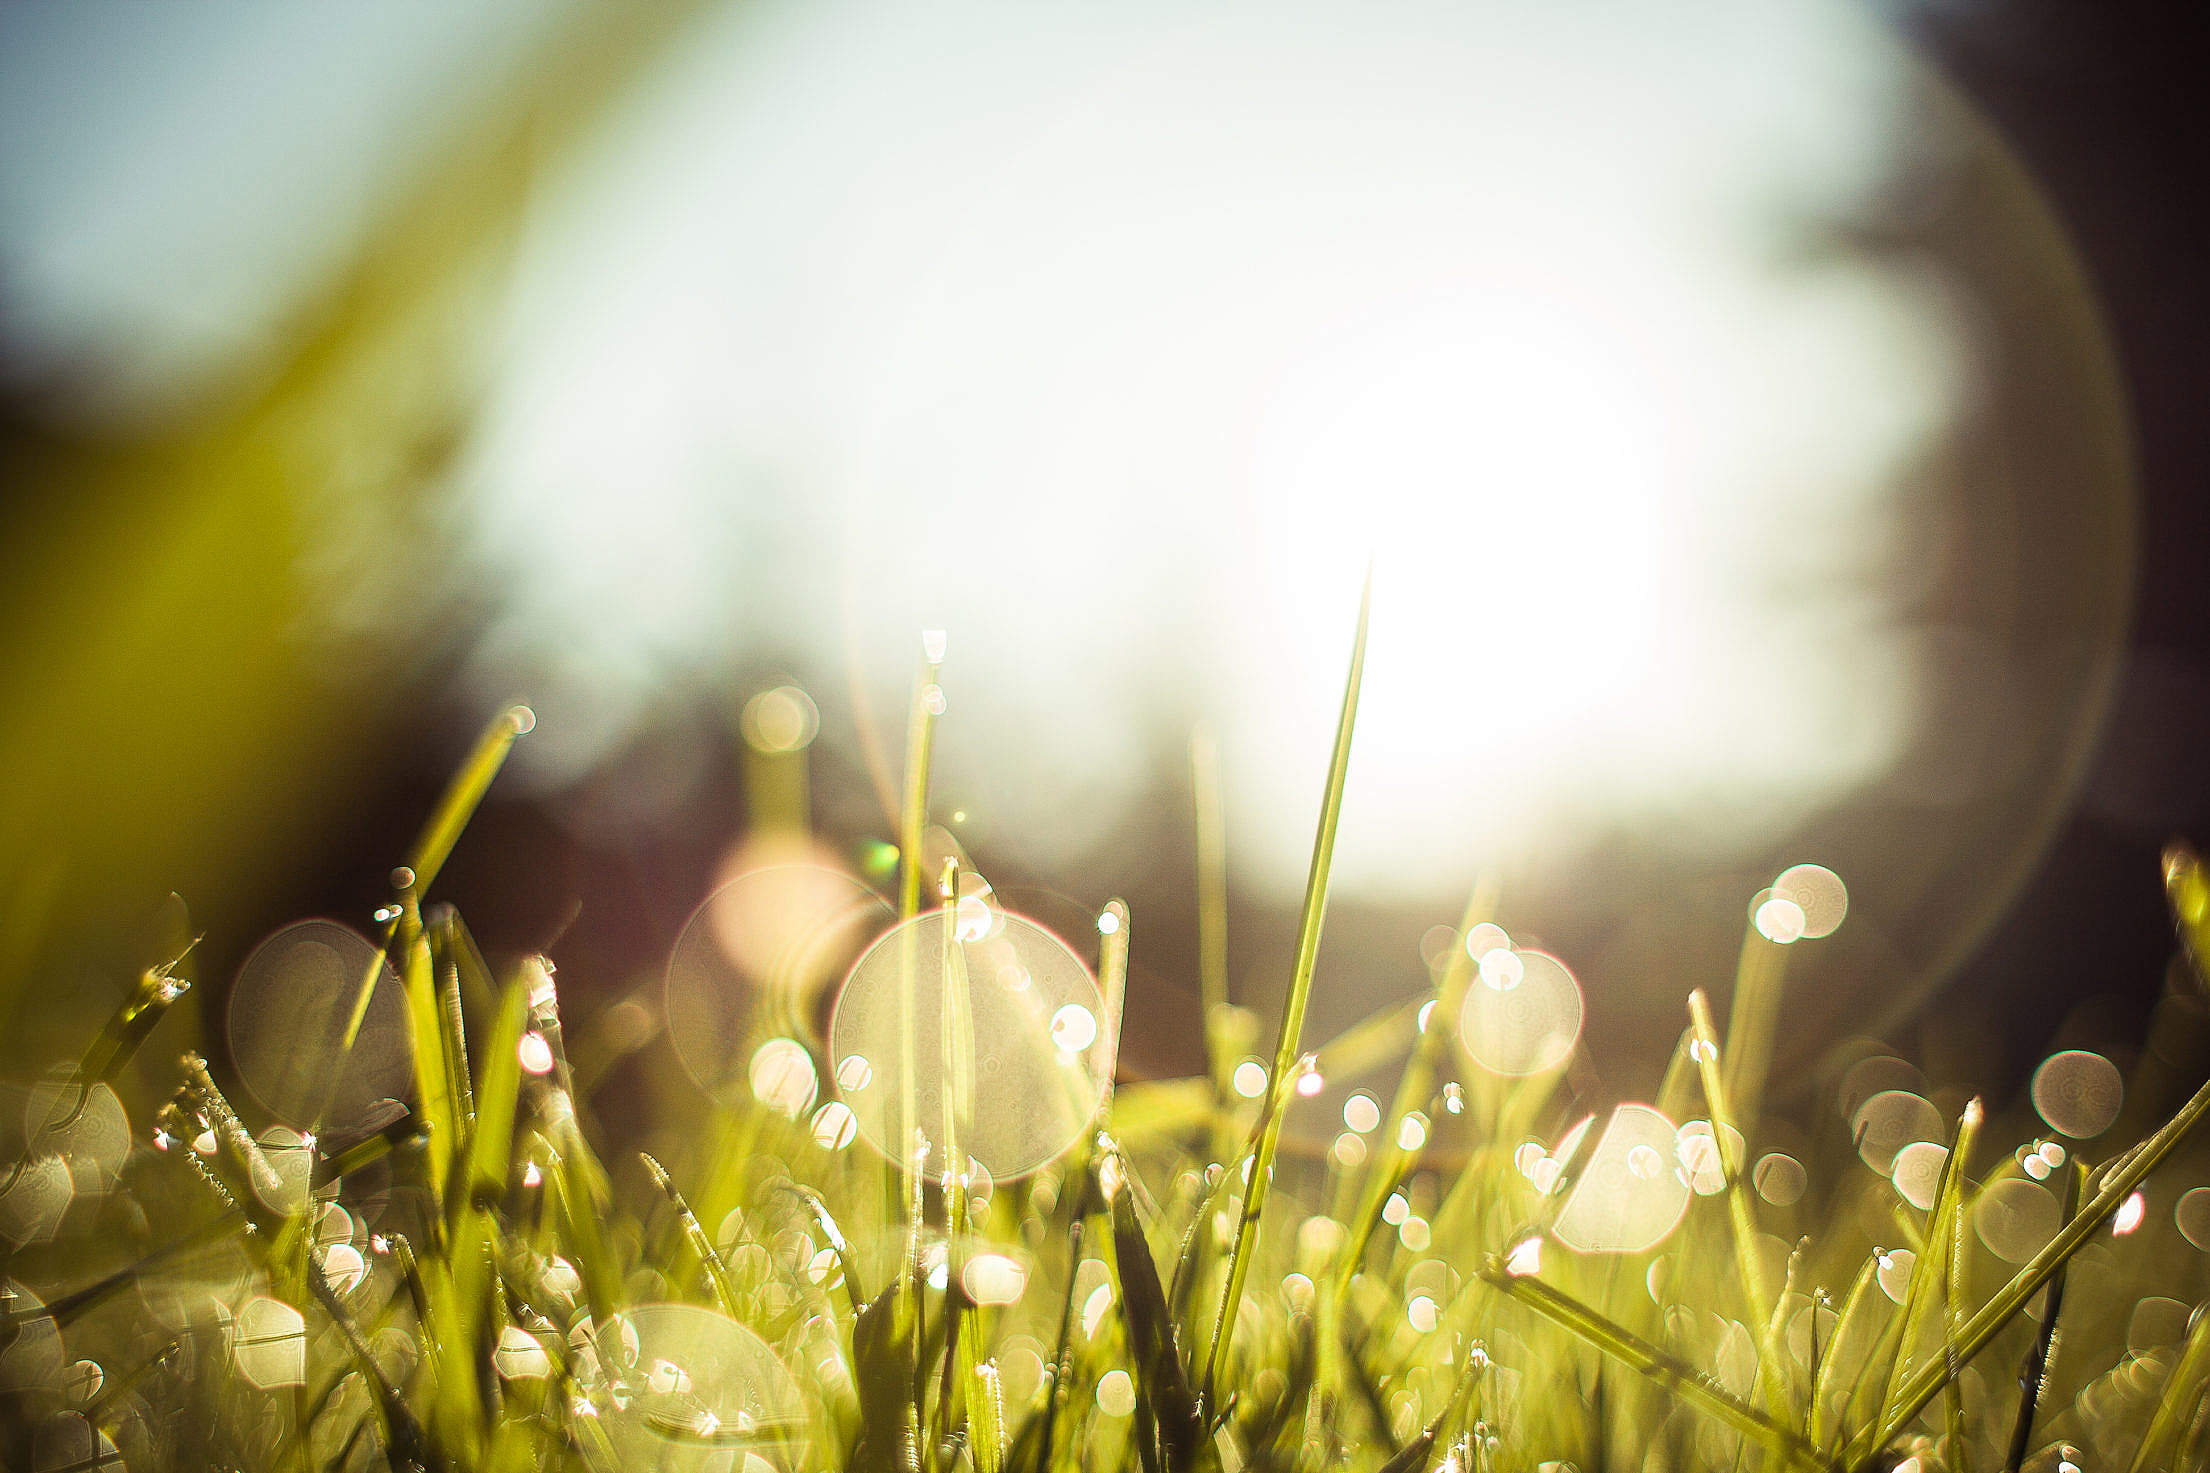 Morning Dew Grass Free Stock Photo